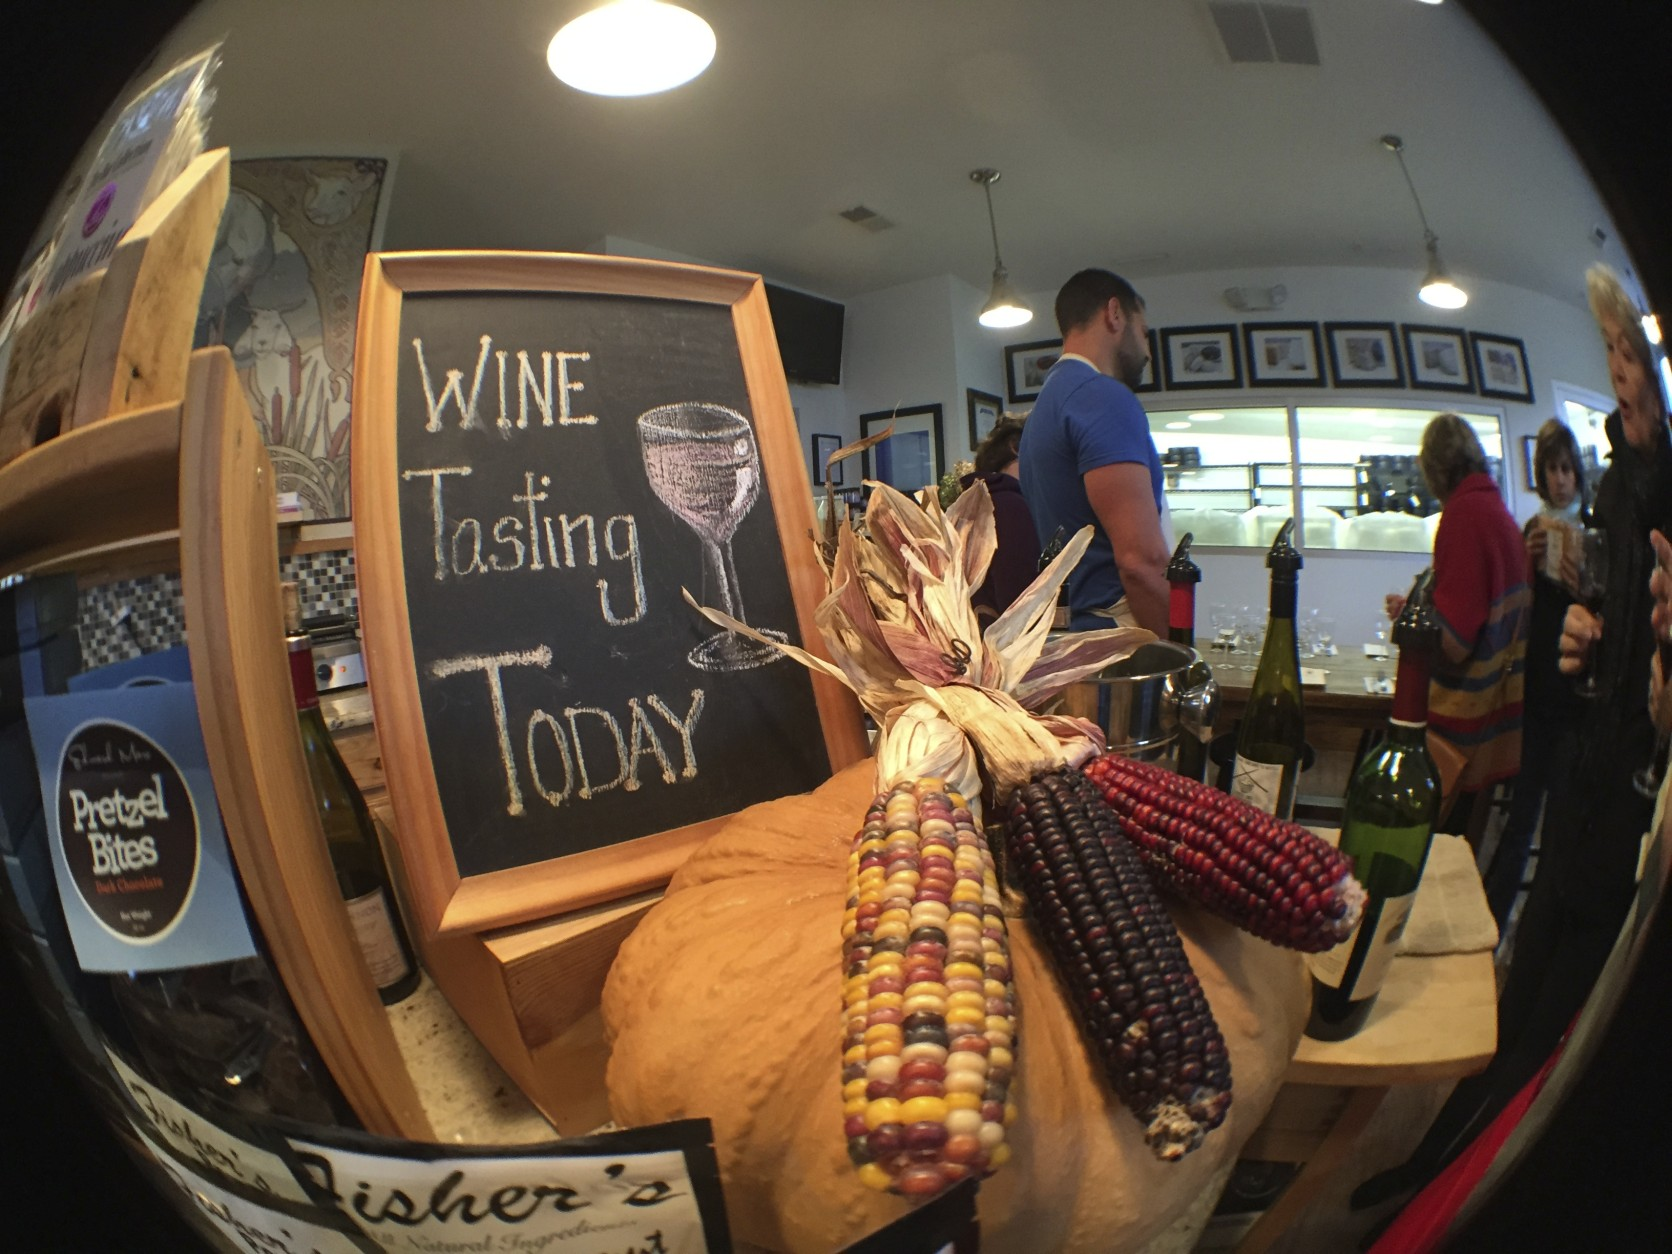 Wine and cheese tastings are a regular part of the experience of a visit to the shop in Garrett County, Maryland. (WTOP/Kate Ryan)